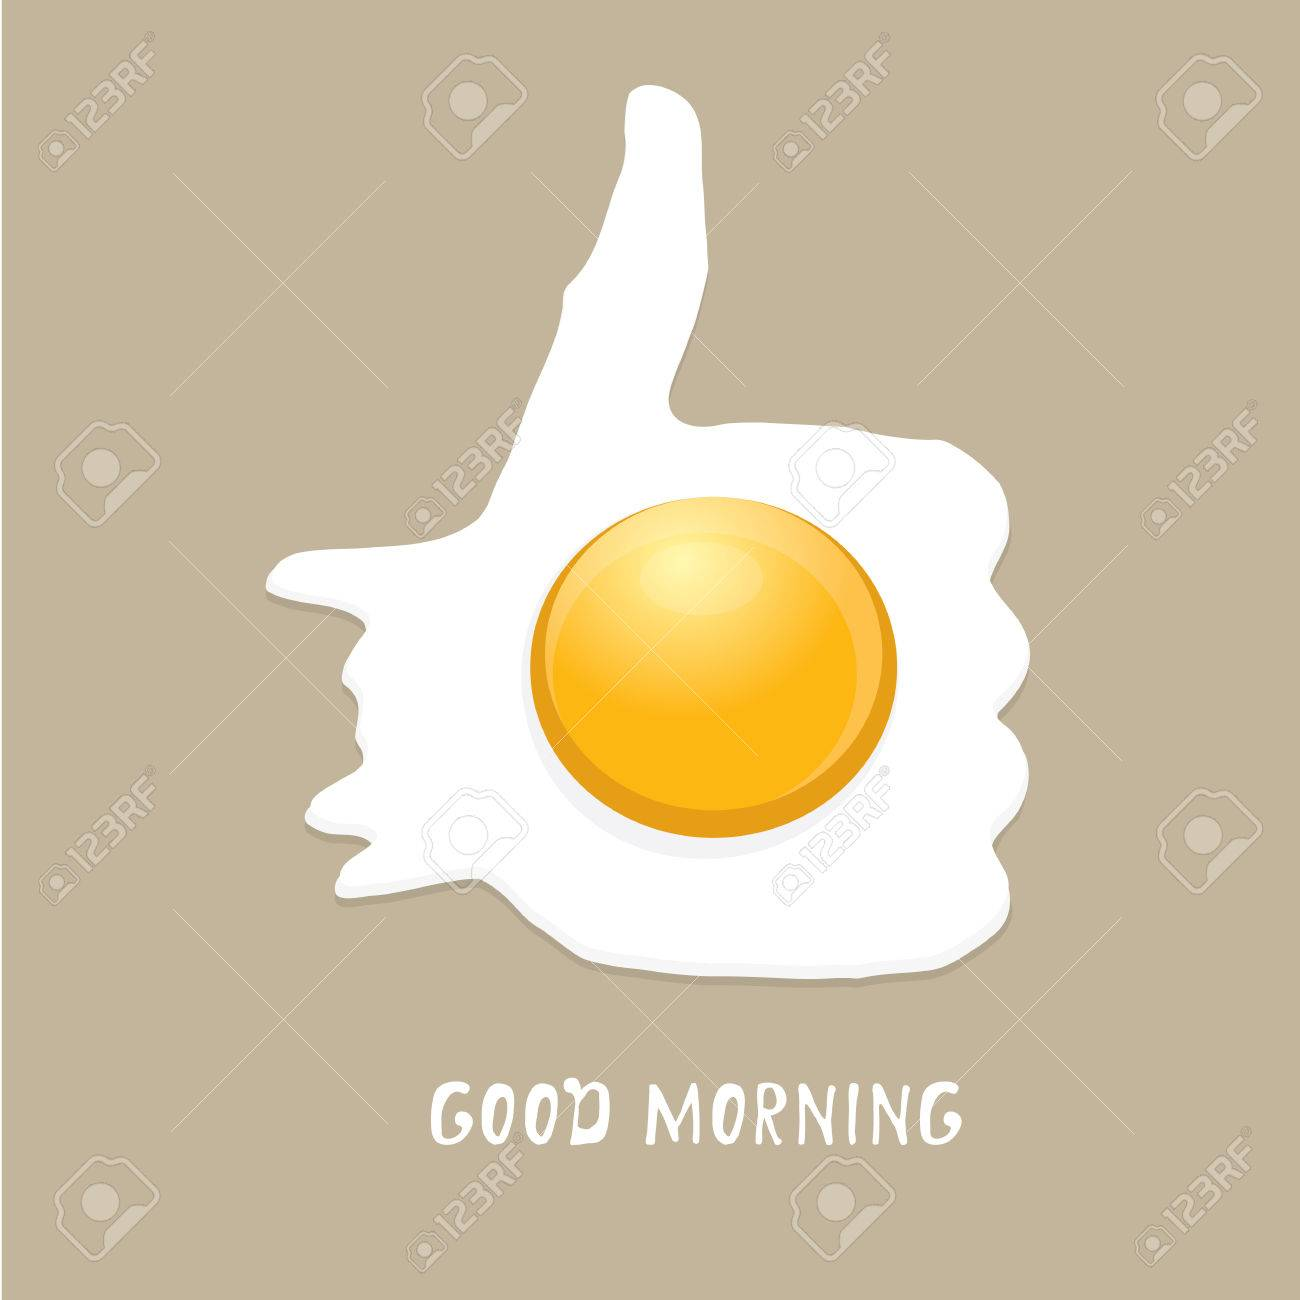 Fried Egg vector illustration. good morning concept. breakfast fried hen or chicken egg with a orange yolk in the centre of the fried egg. - 44950133